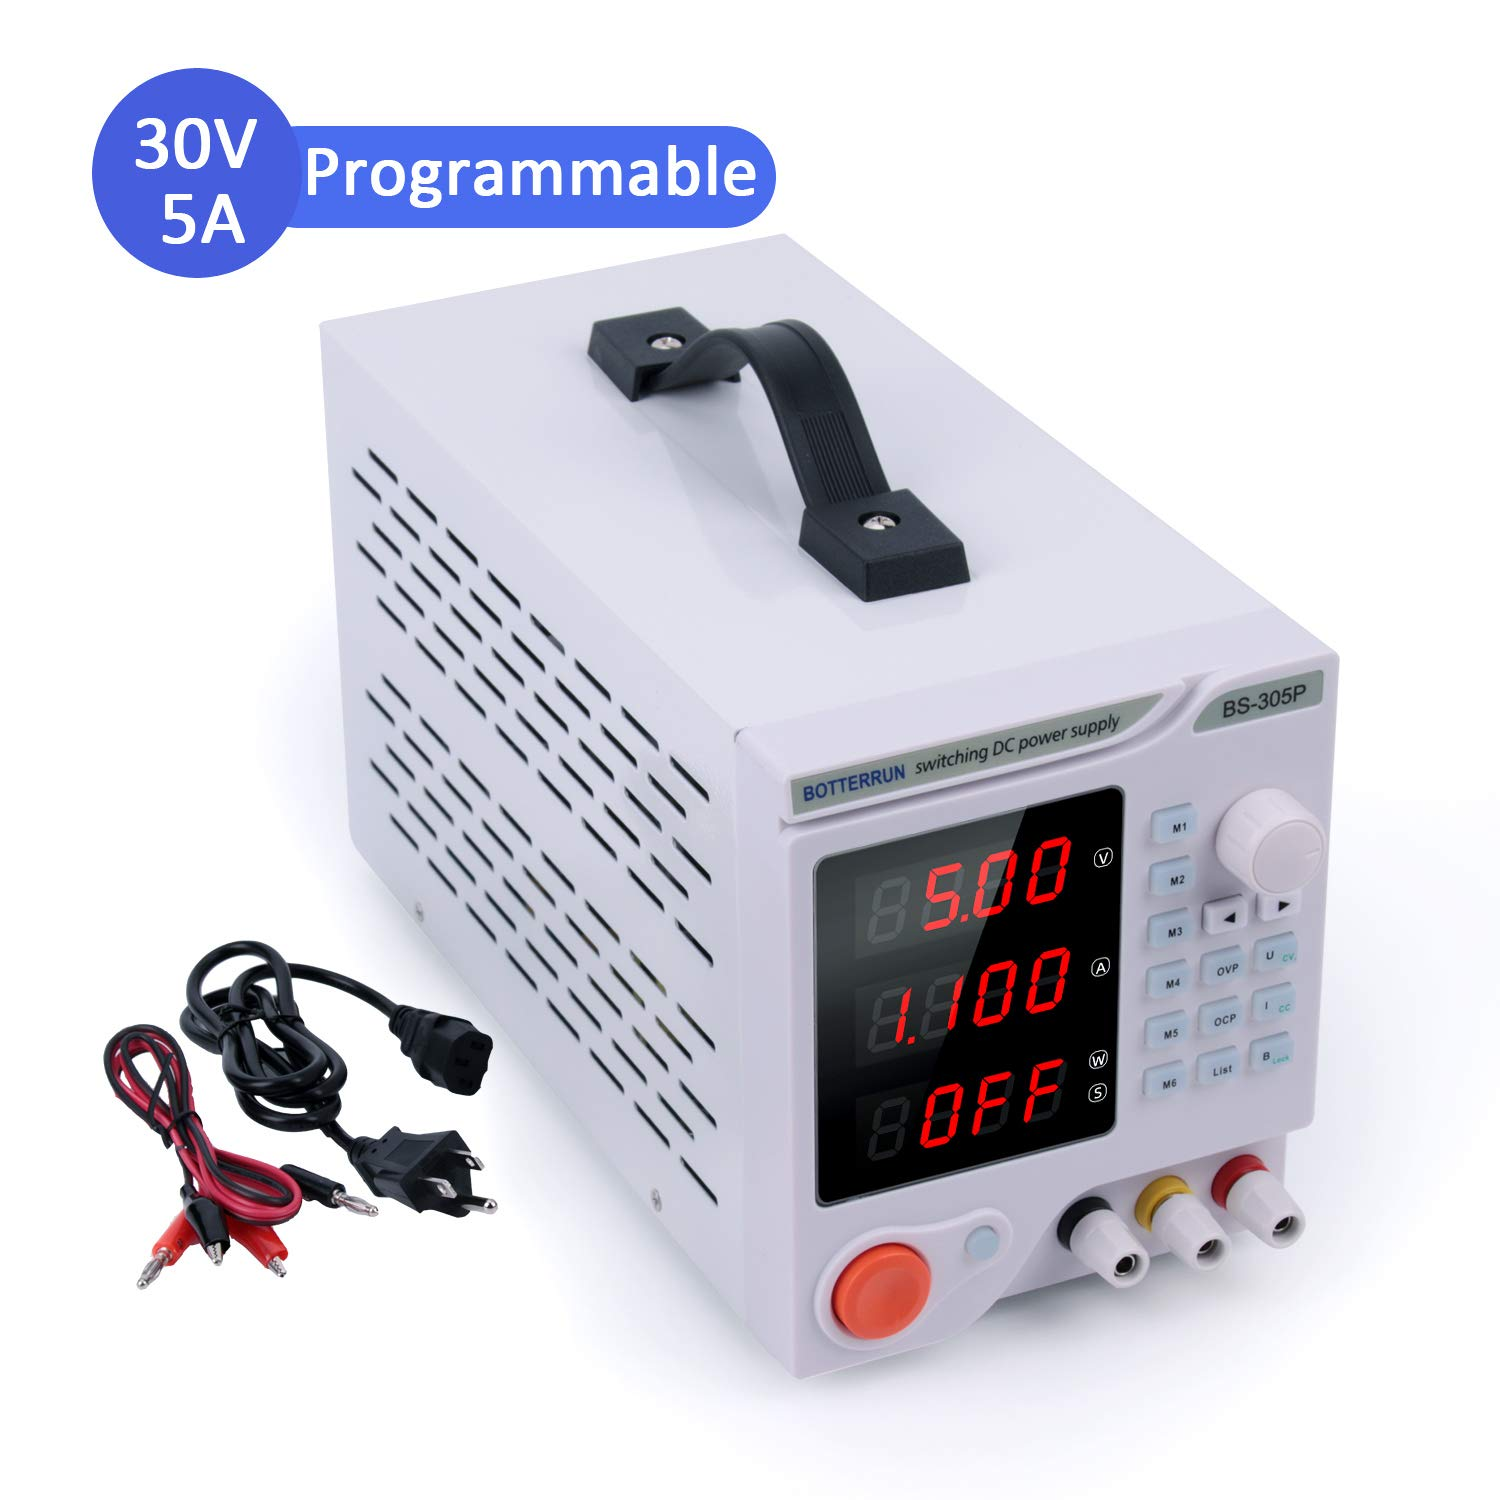 Programmable DC Power Supply (0-30 V 0-5 A), BOTTERRUN BS-305P 4-Digital Variable Switching Regulated High Precision Power Supply Portable with Alligator Test Leads